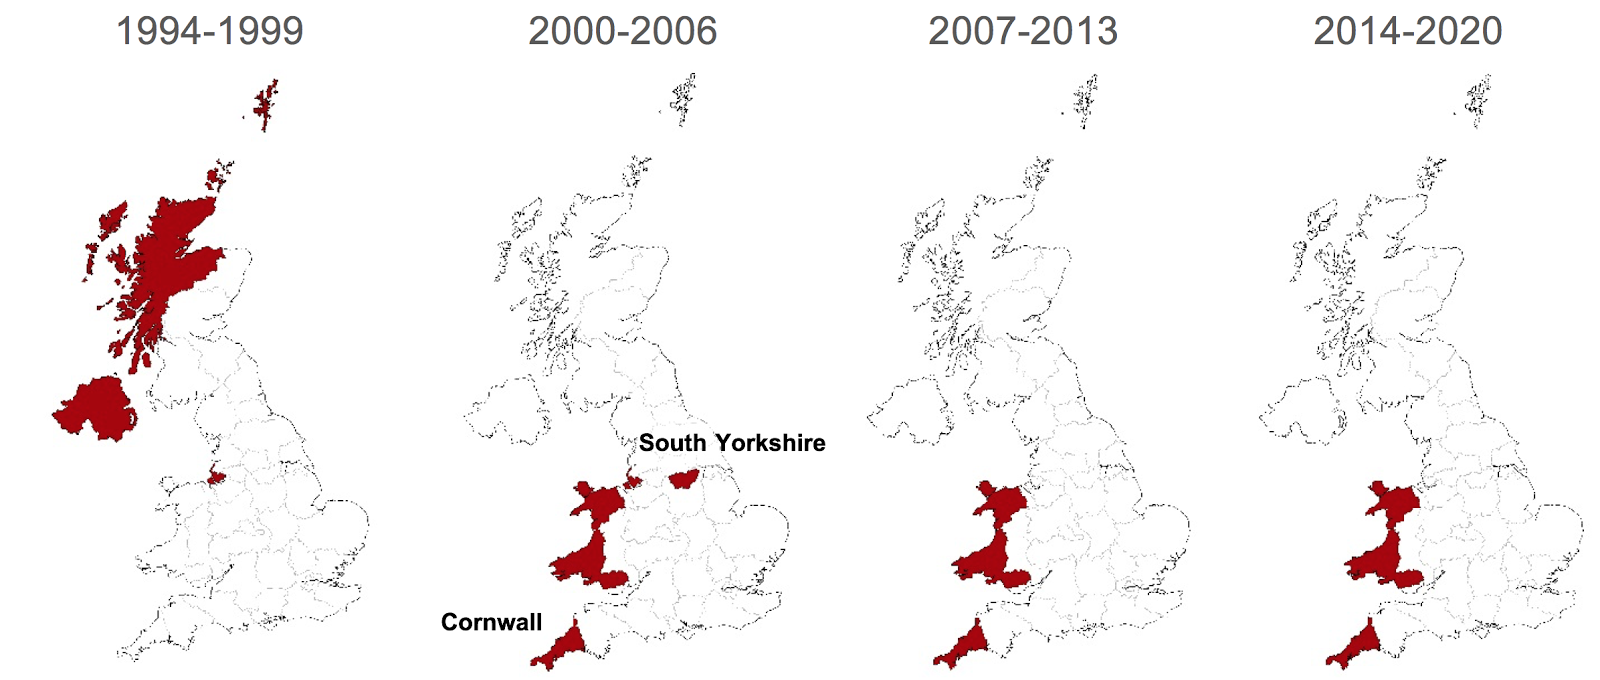 online comment analyses and debate by cep academics on in order to single out the effects of the eu funds in the two regions 1992 2014 regional trends of unemployment in cornwall and south yorkshire are